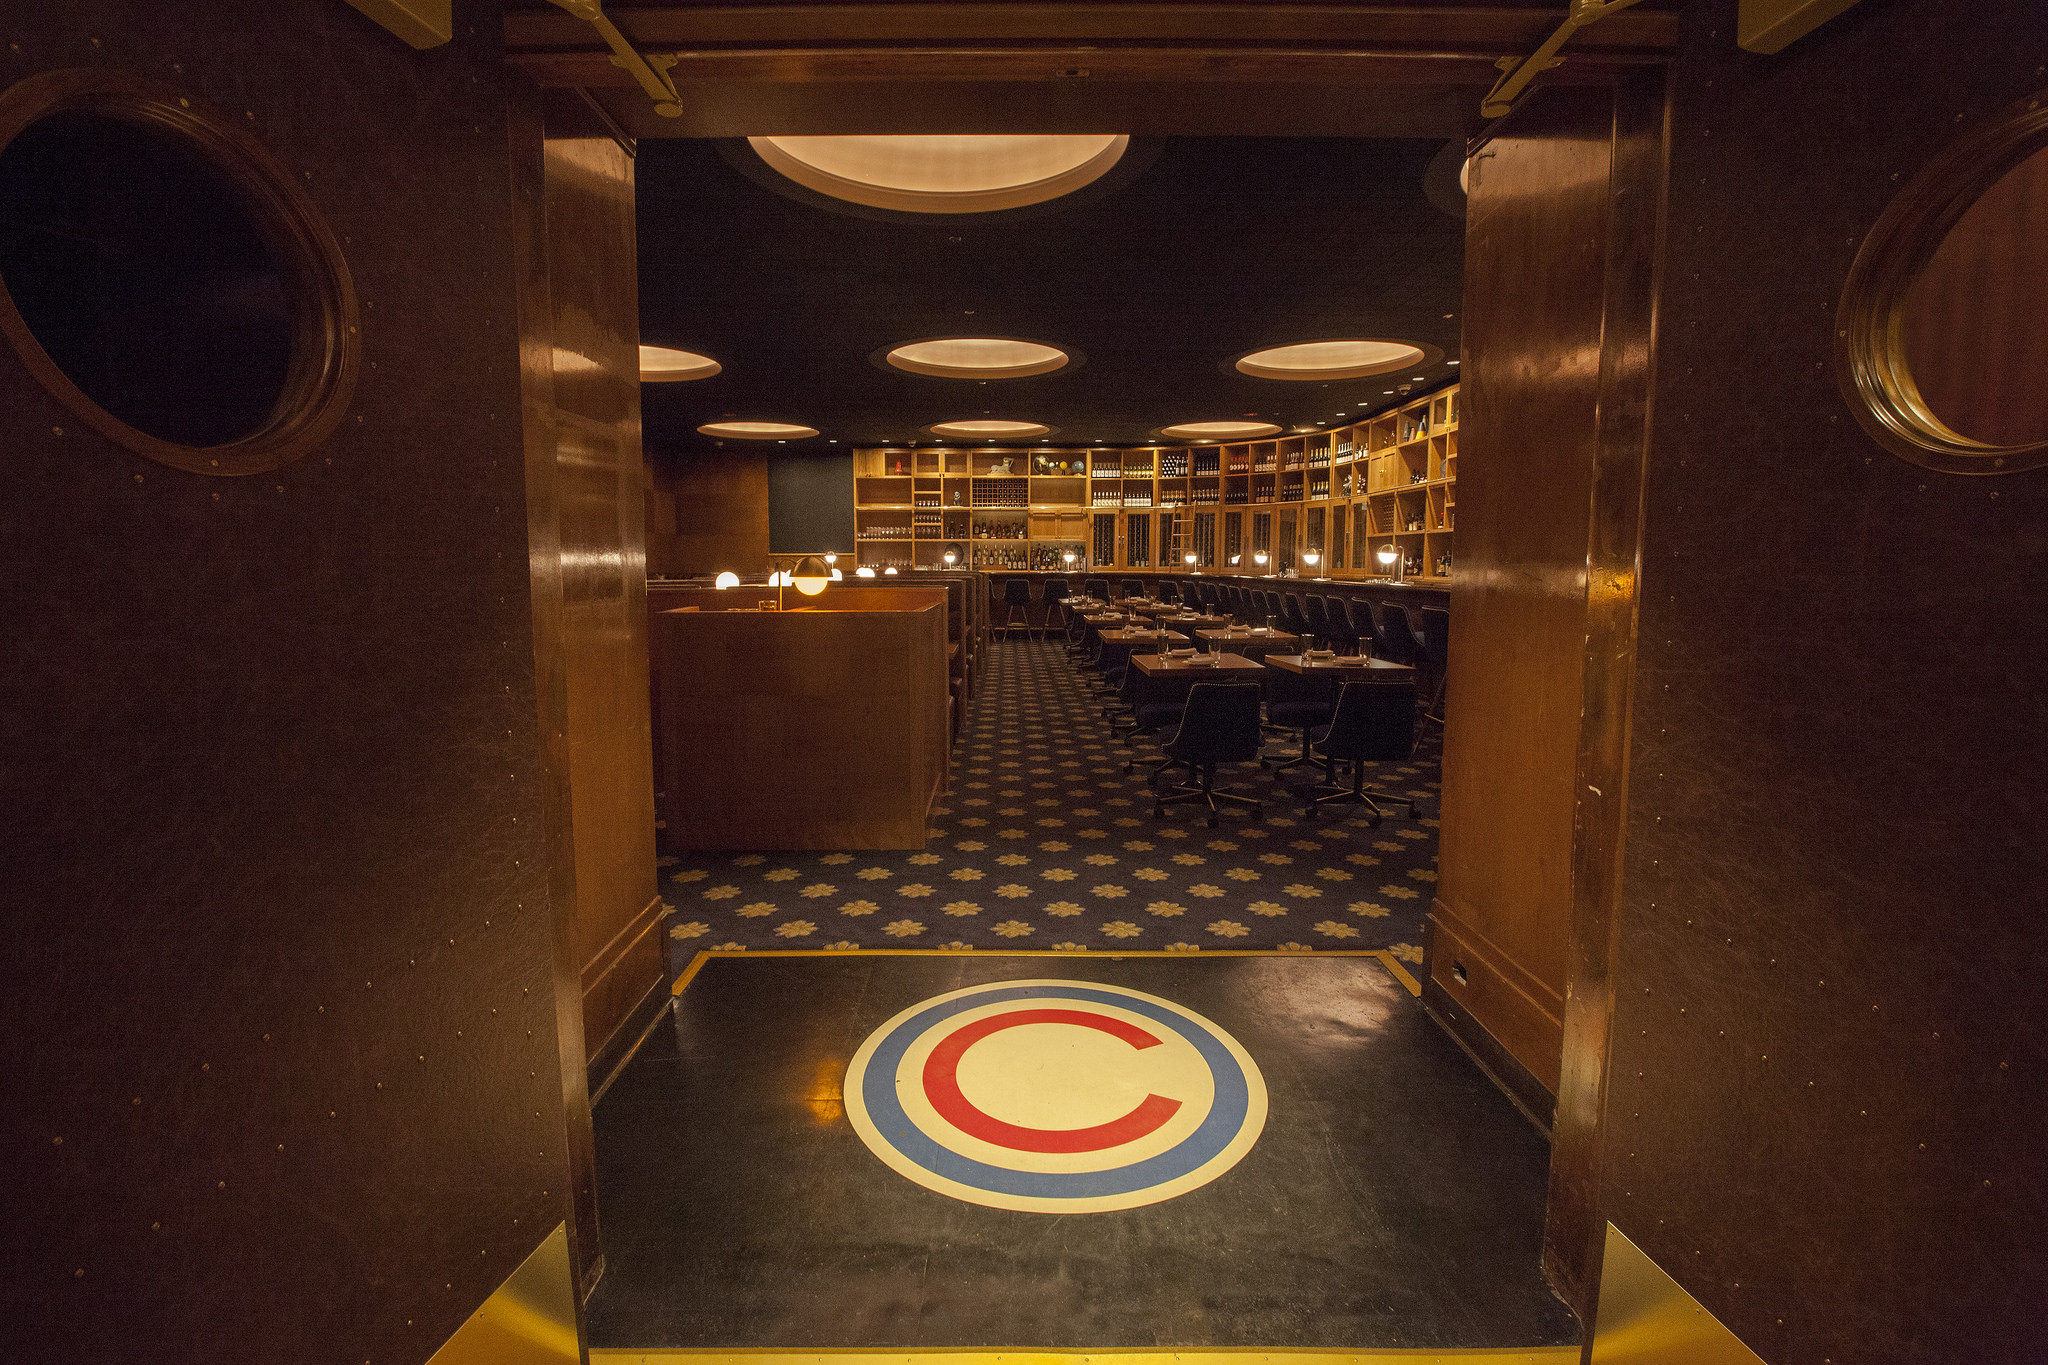 The entrance to Cherry Circle Room inside the Chicago Athletic Association hotel has plenty of historic wood paneling, wooden furniture, drim lighting, and the logo on the floor.